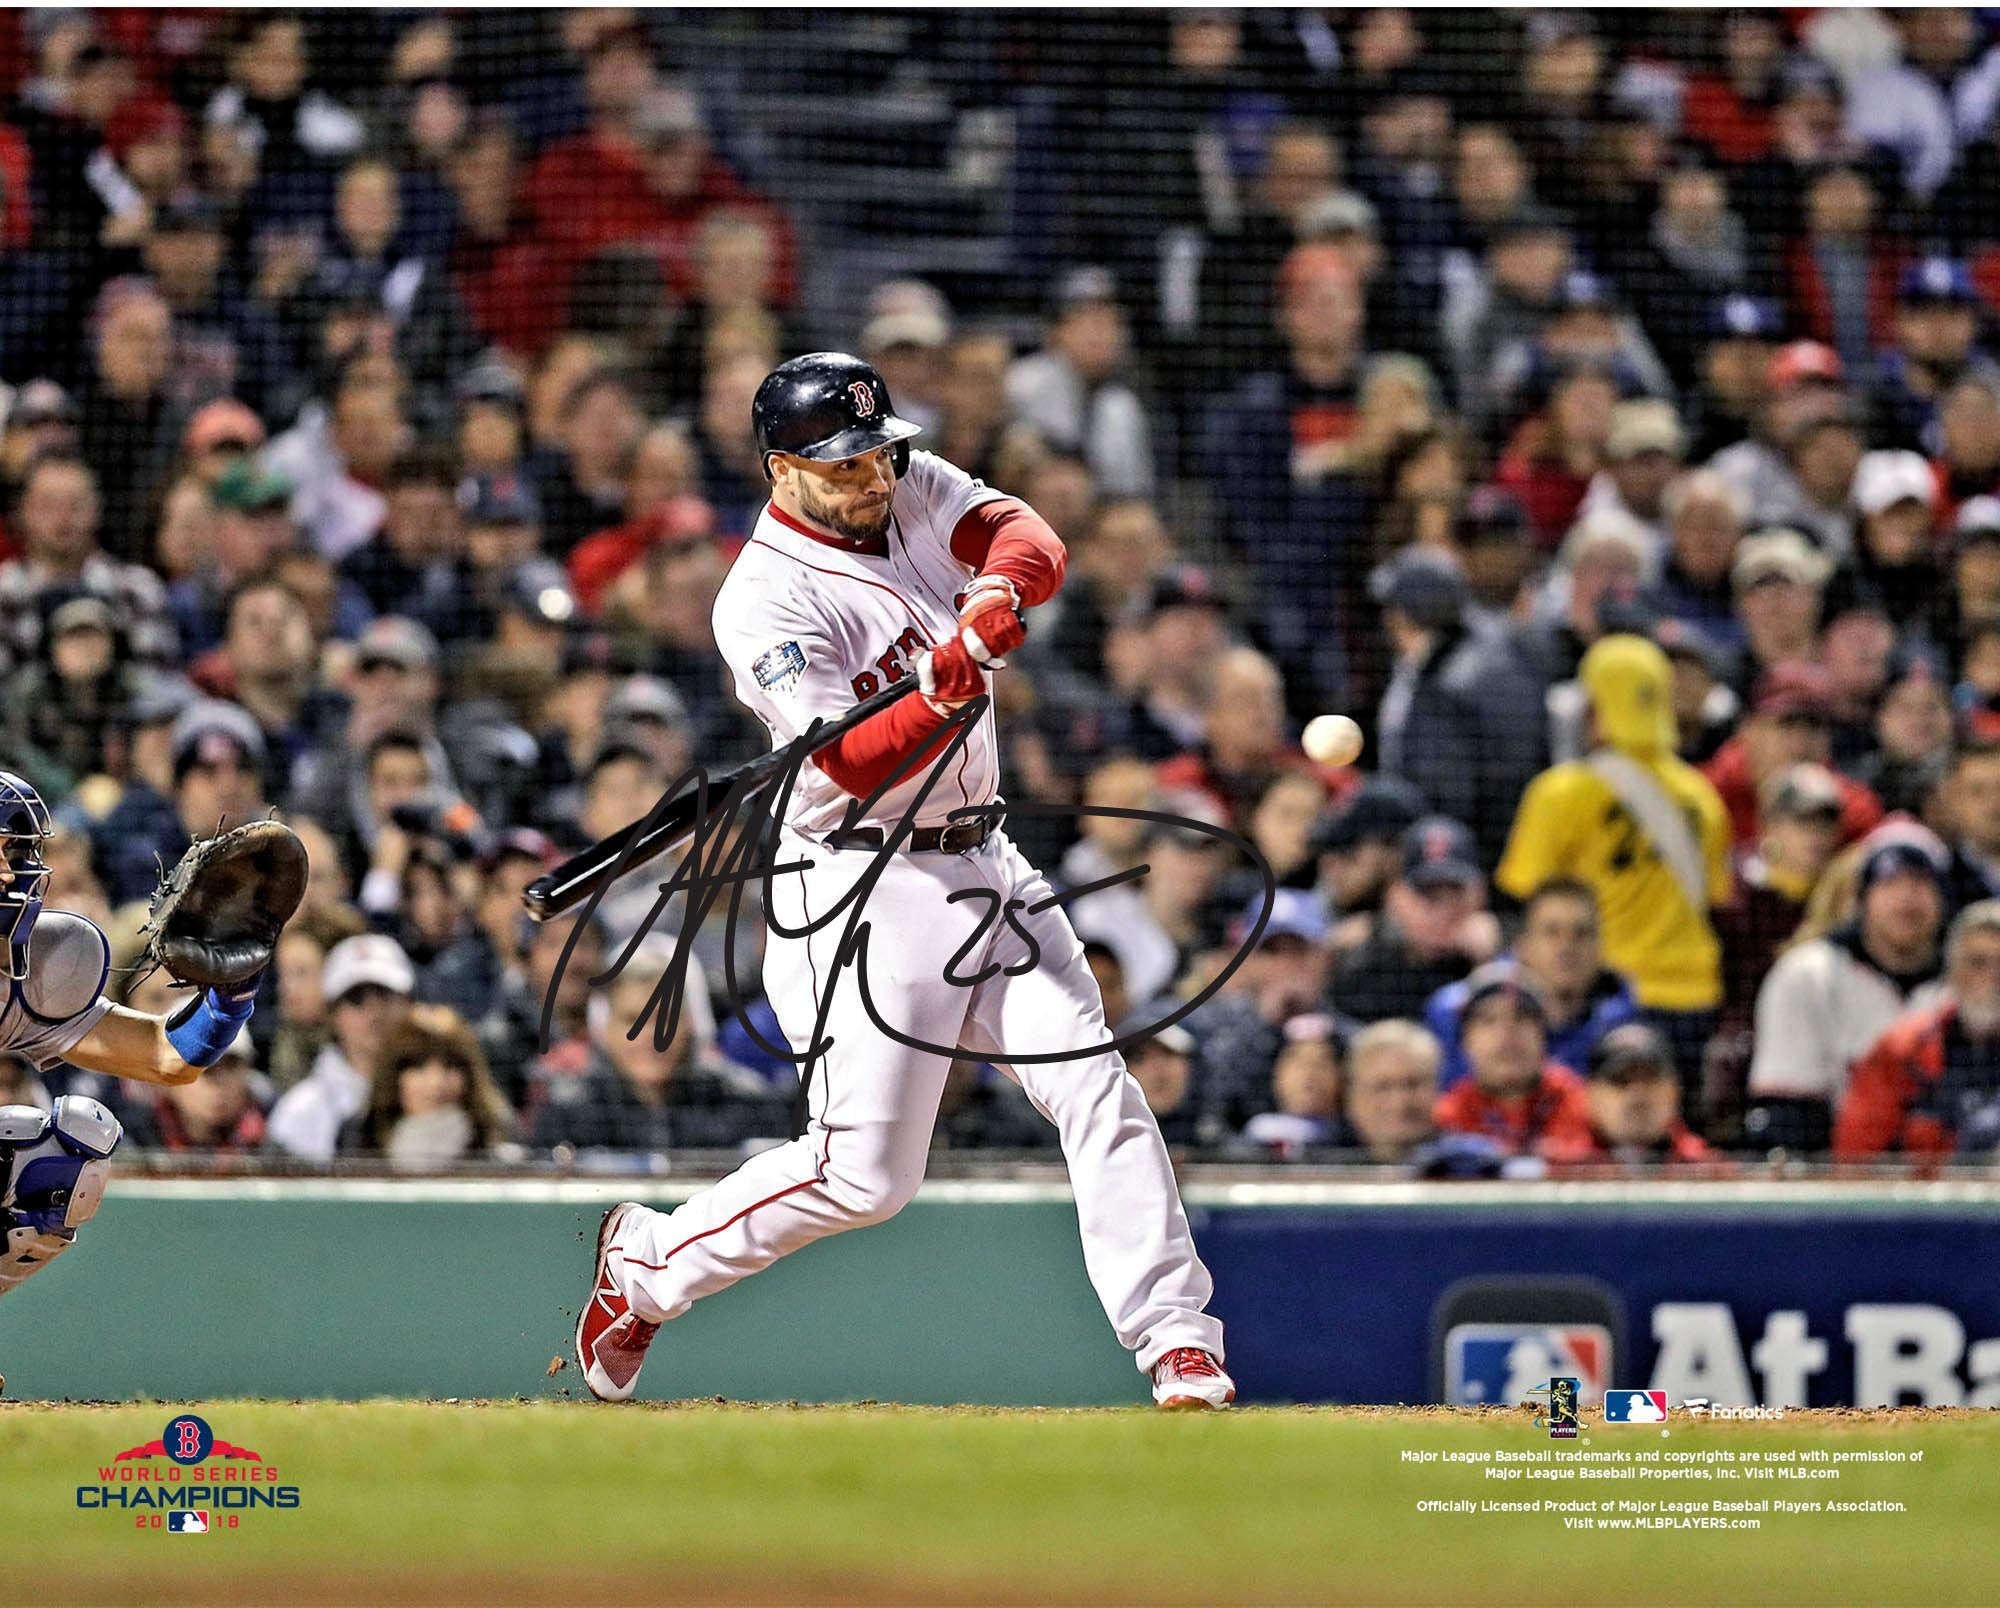 """Steve Pearce Boston Red Sox 2018 MLB World Series Champions Autographed 8"""" x 10"""" World Series Hitting Photograph Fanatics Authentic Certified"""